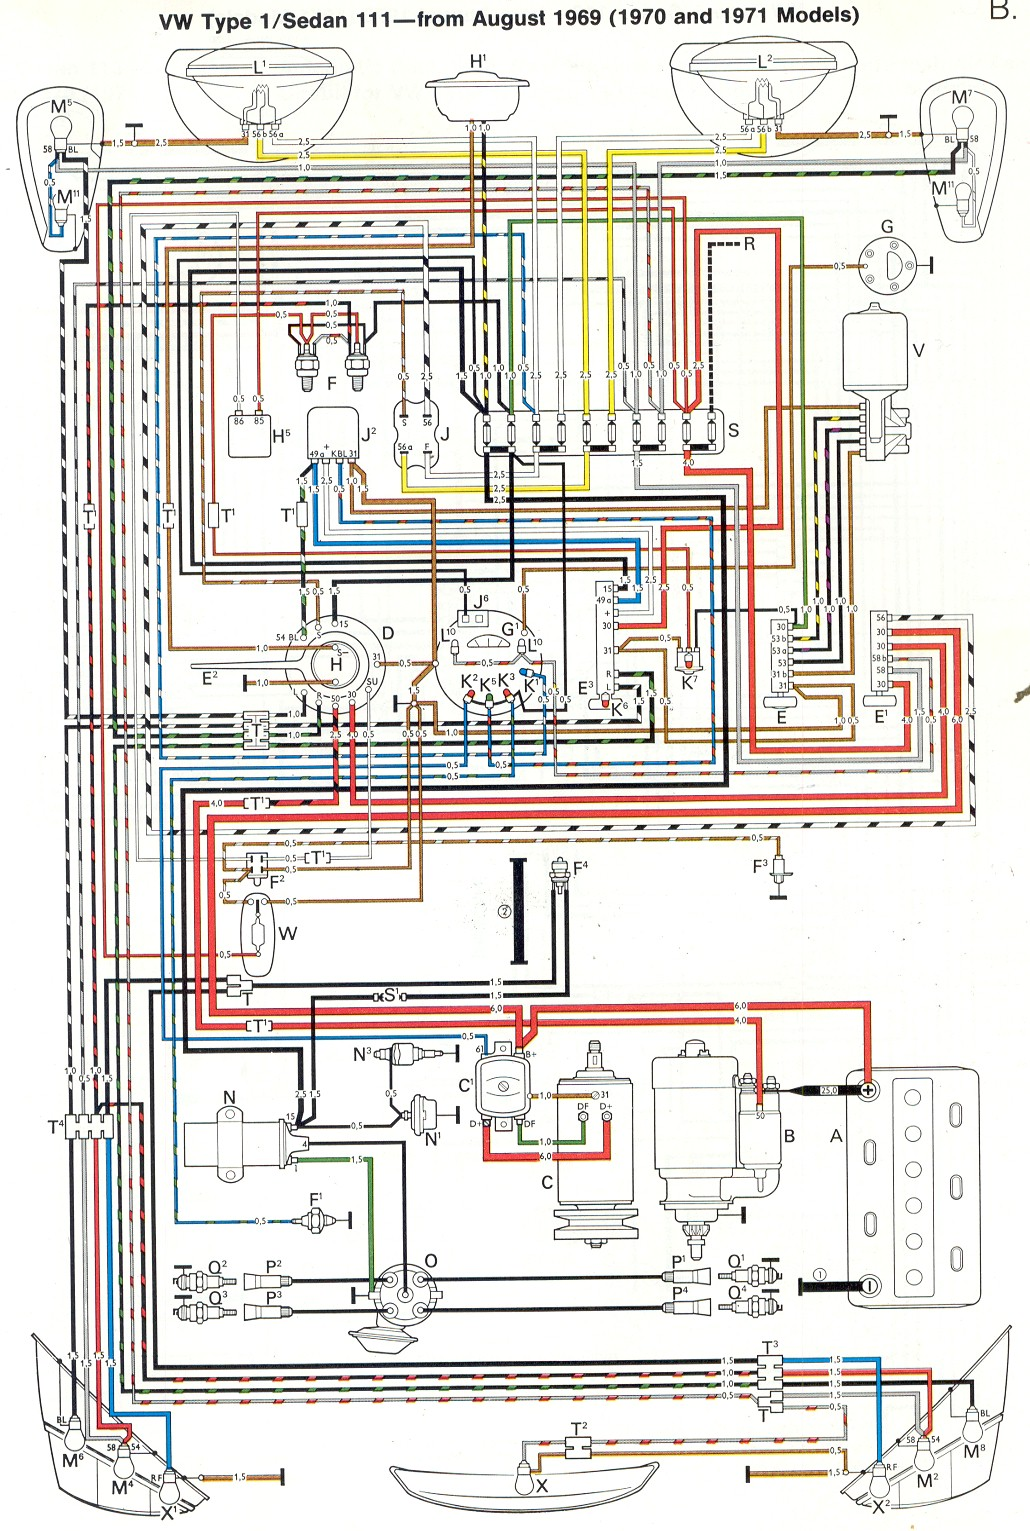 Vw Bug Battery Wiring - Wiring Diagram Online  Beetle Wiring Harness Diagram on 71 beetle seats, 71 beetle wheels, 71 beetle fuse diagram, 71 beetle bumpers, vw beetle diagram, 71 beetle exhaust, 71 beetle engine, 71 beetle parts, super beetle engine diagram, 71 beetle carb diagram, 71 beetle rear suspension, 1971 vw engine diagram, 71 beetle oil filter,